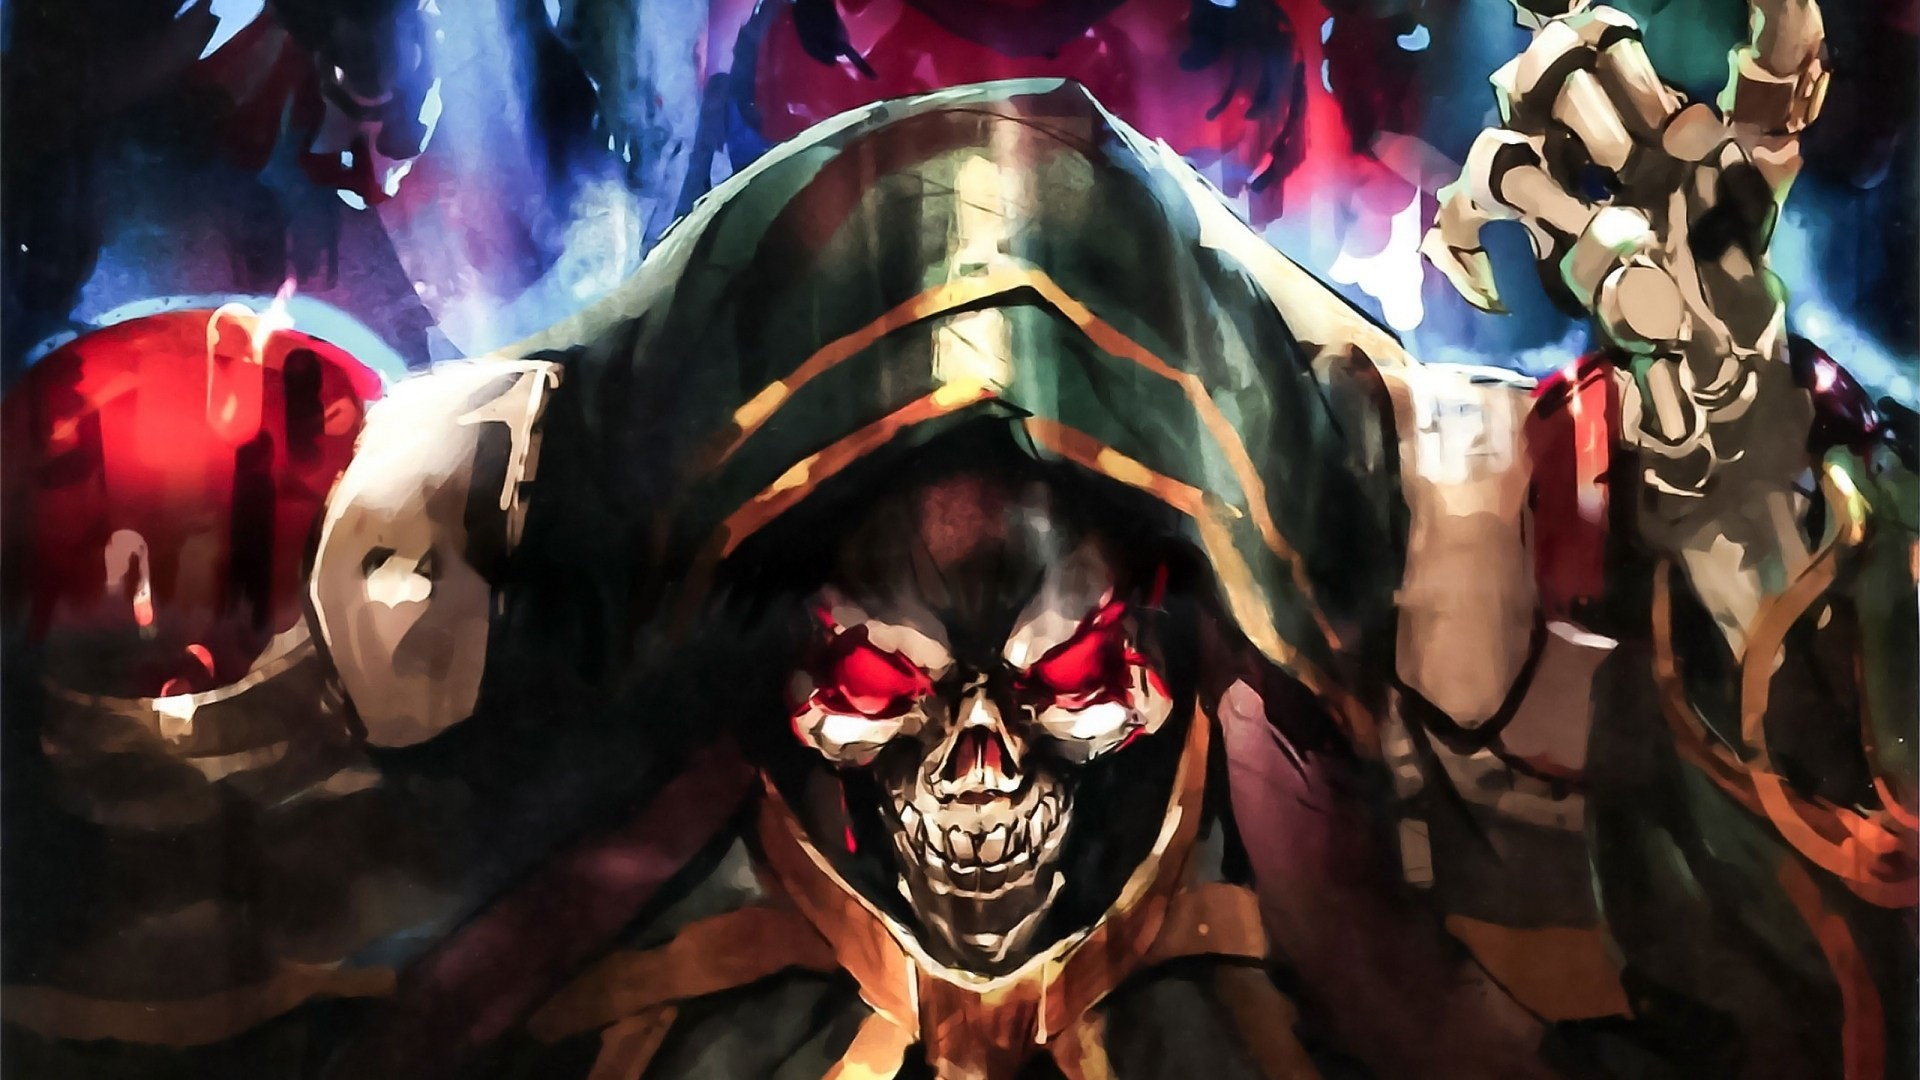 Res: 1920x1080, Overlord Ainz Ooal Gown 1080p HD Wallpaper Background